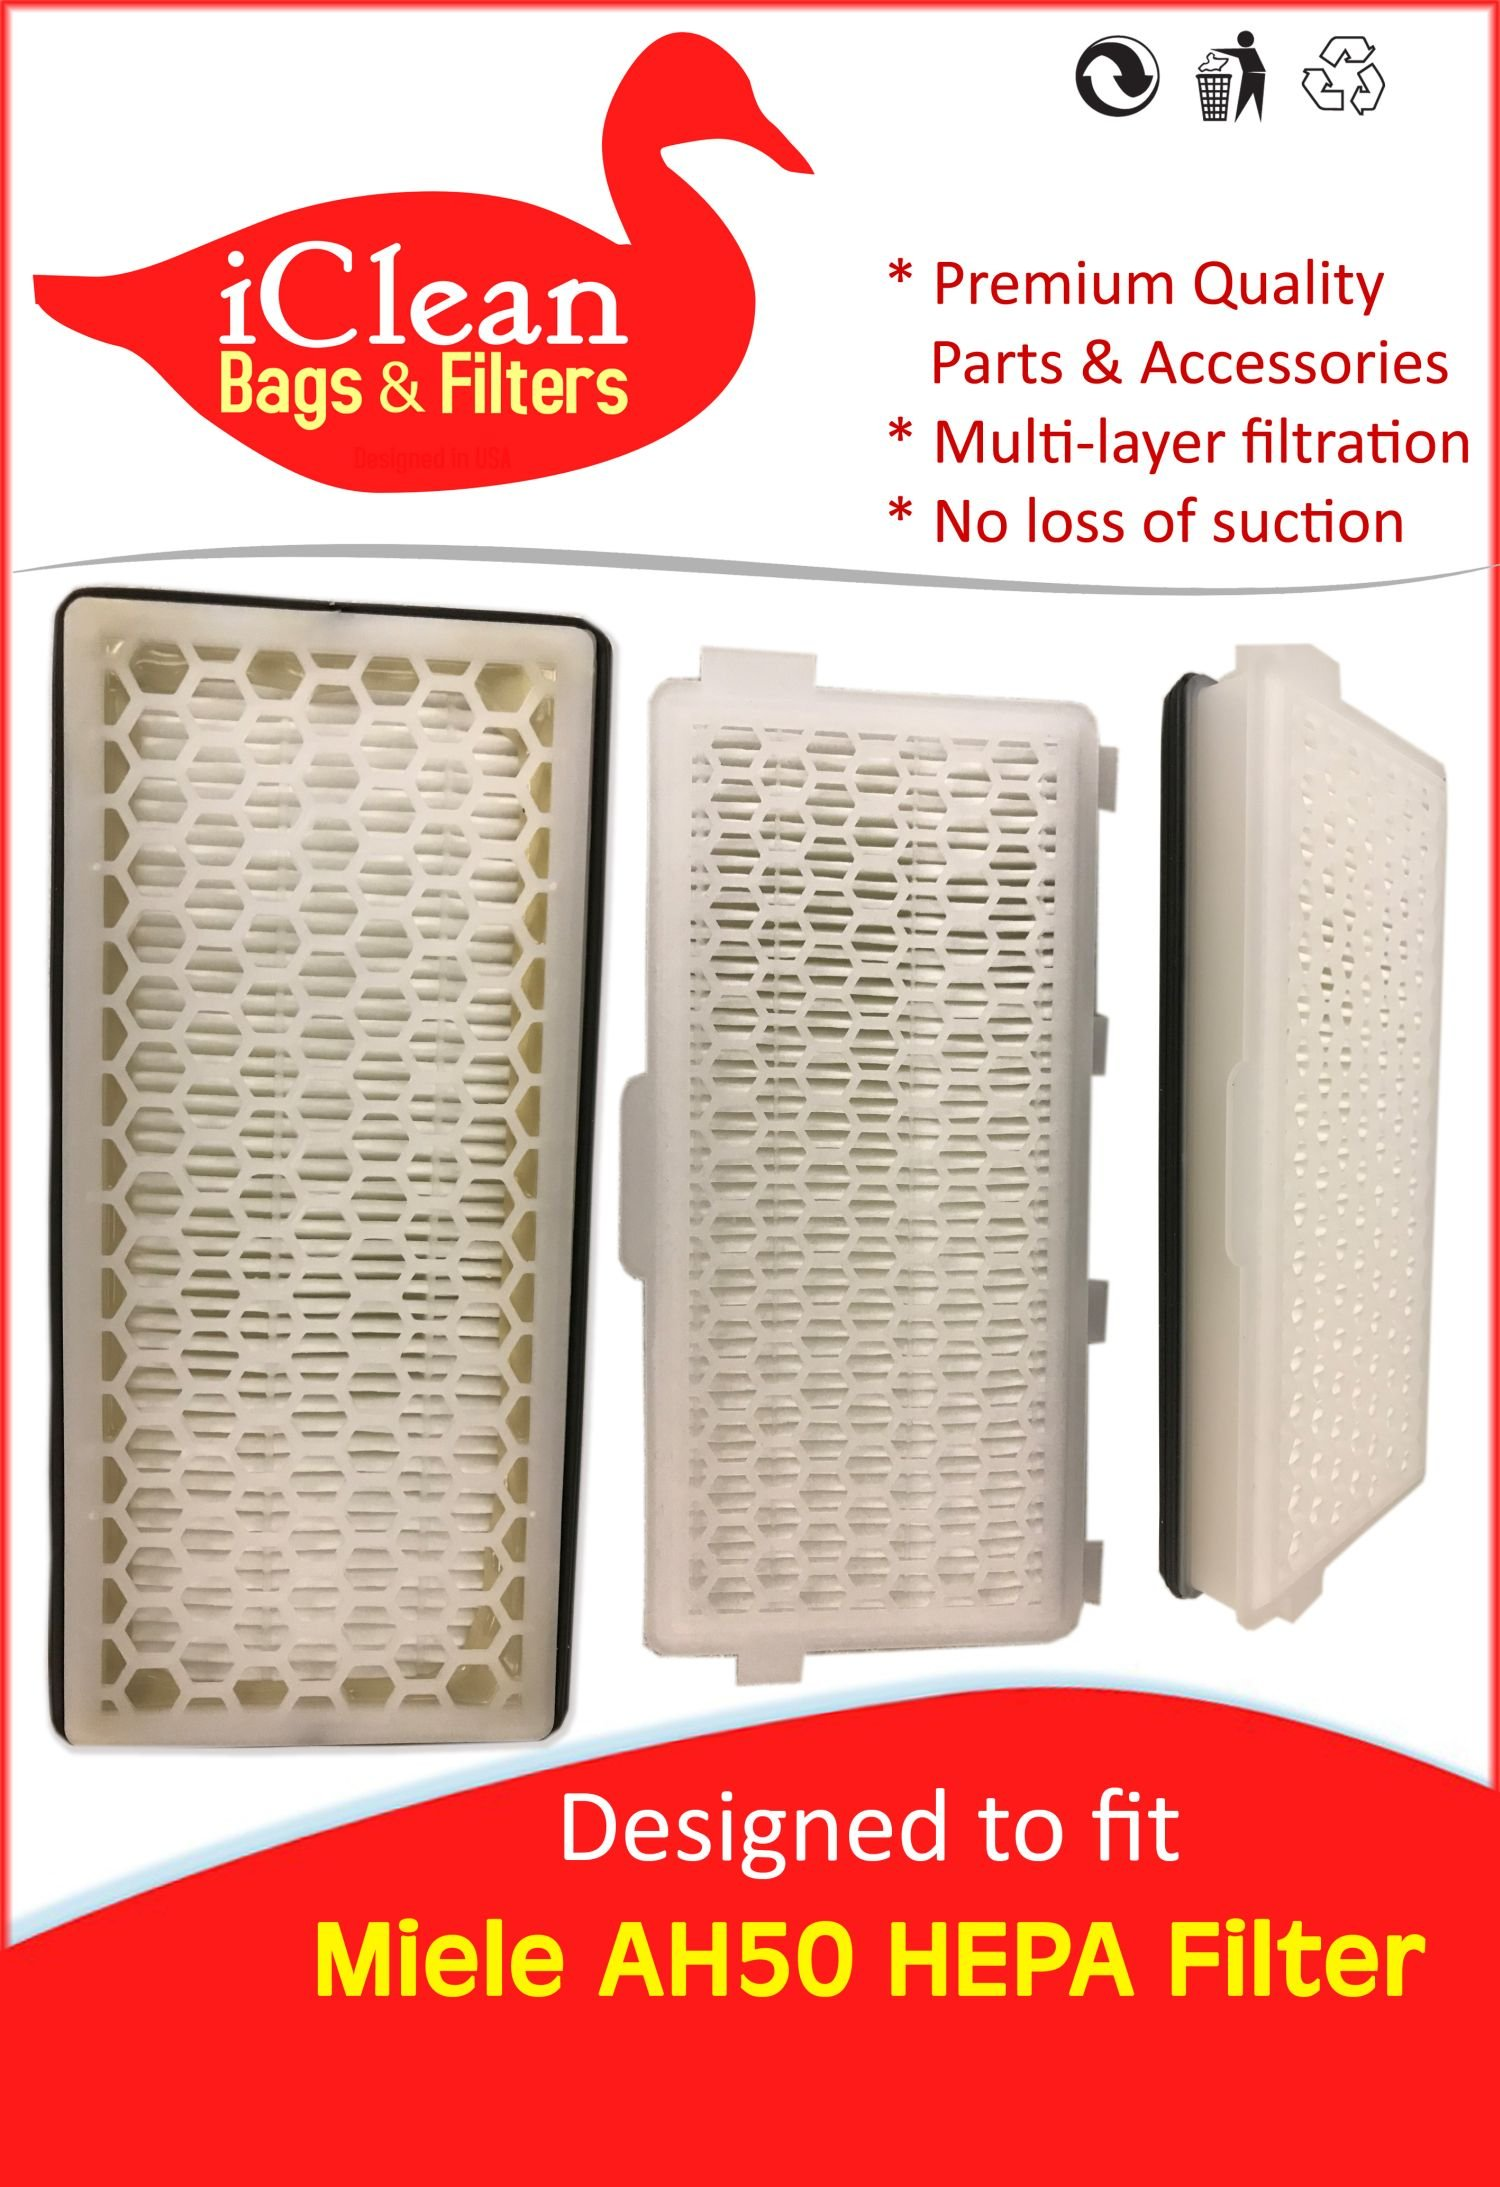 iClean Vacuums Miele HEPA SFAH 50 Filter -6 Filter Fits Many Canisters This Filter Produces Clean AIR Like The Original! Proven with Particle Scanner! Fits S4000/S5000/S6000/S8000/S6000/C2/S8000/C3 by iClean Vacuums